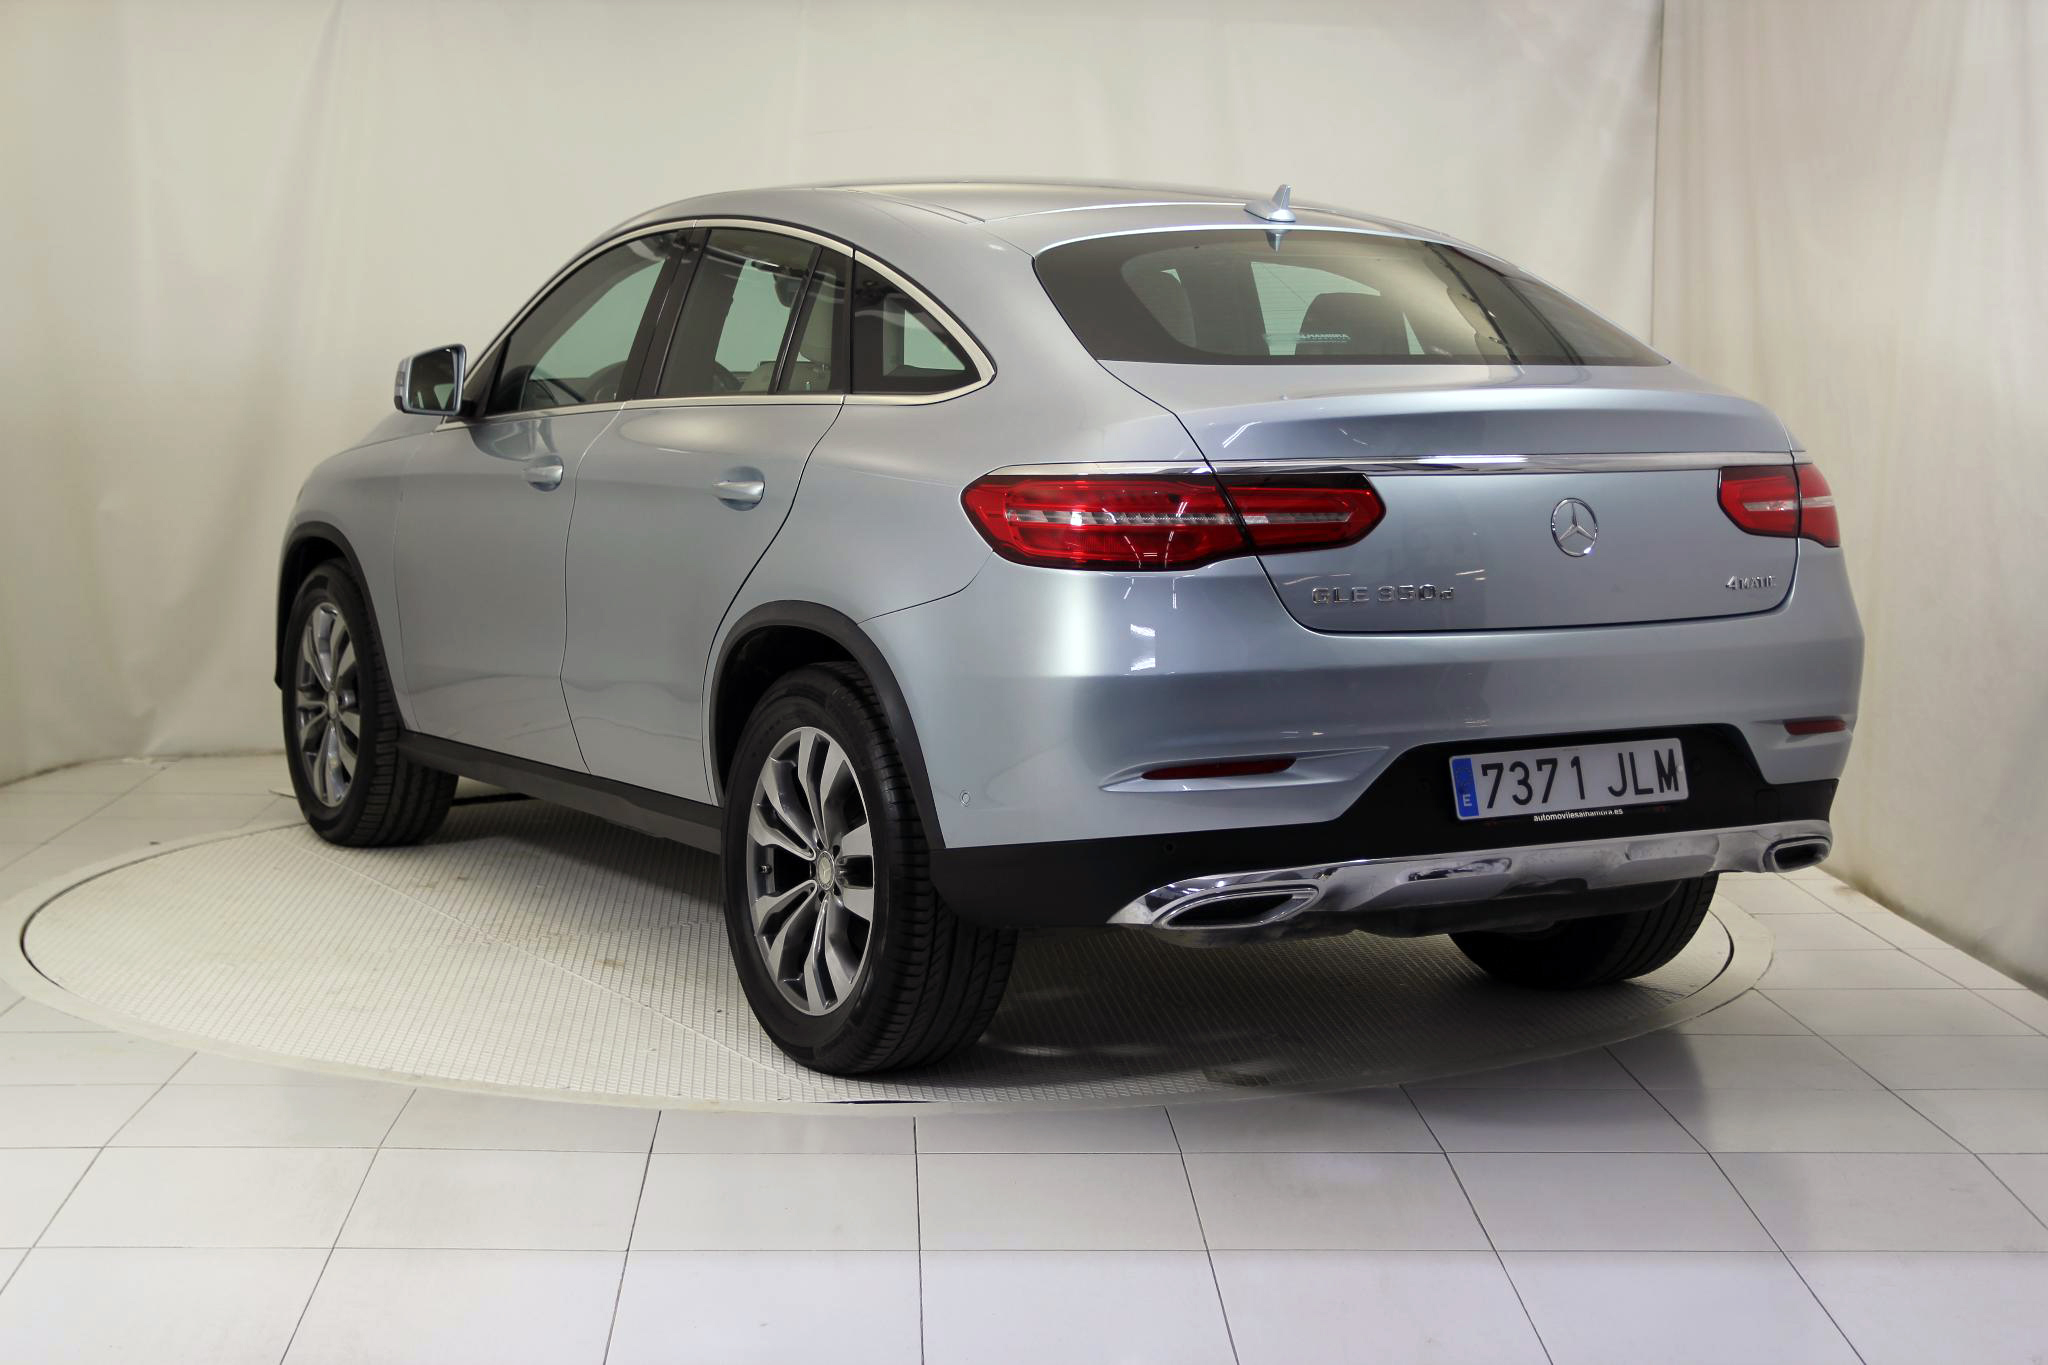 Mercedes-Benz Clase GLE GLE COUPE 350 D 4MATIC imagen 8